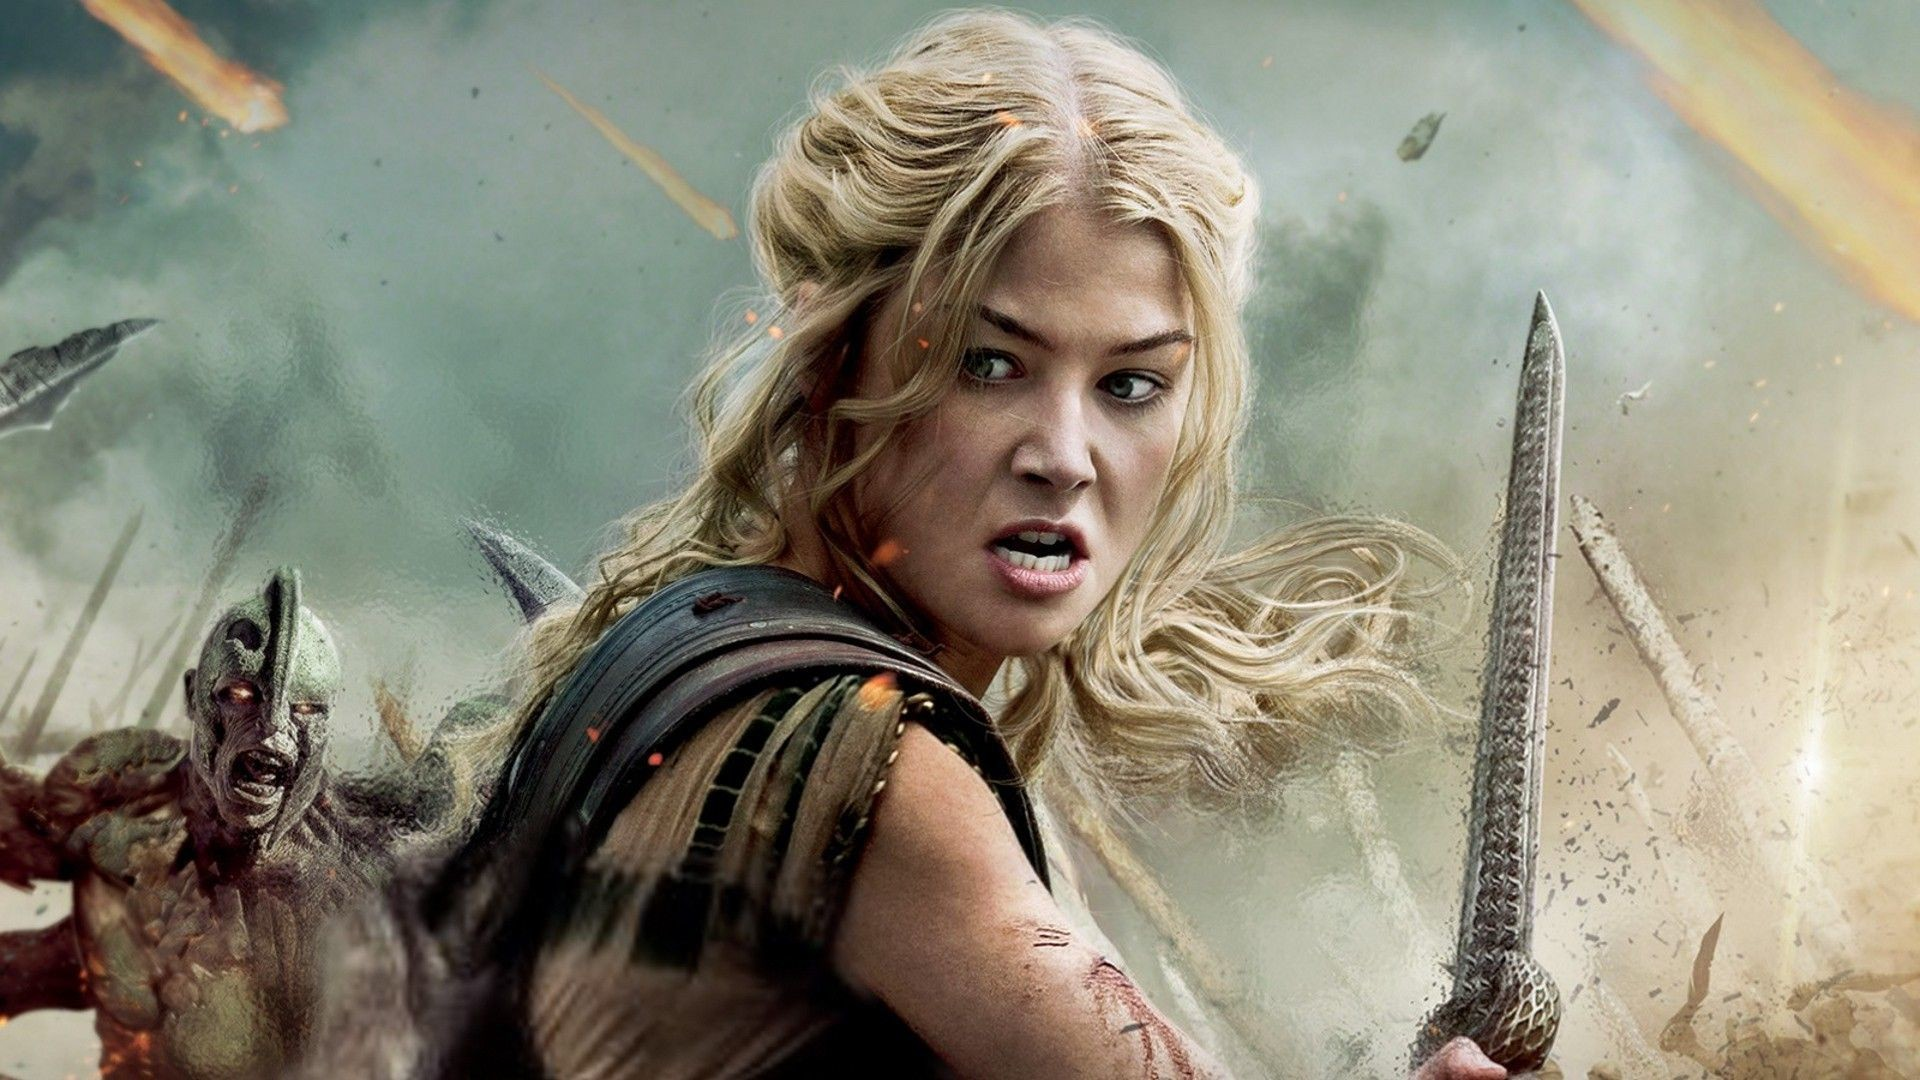 Res: 1920x1080, aeon flux with sword | rosamund pike wrath of titans wallpapers categories  movies added .